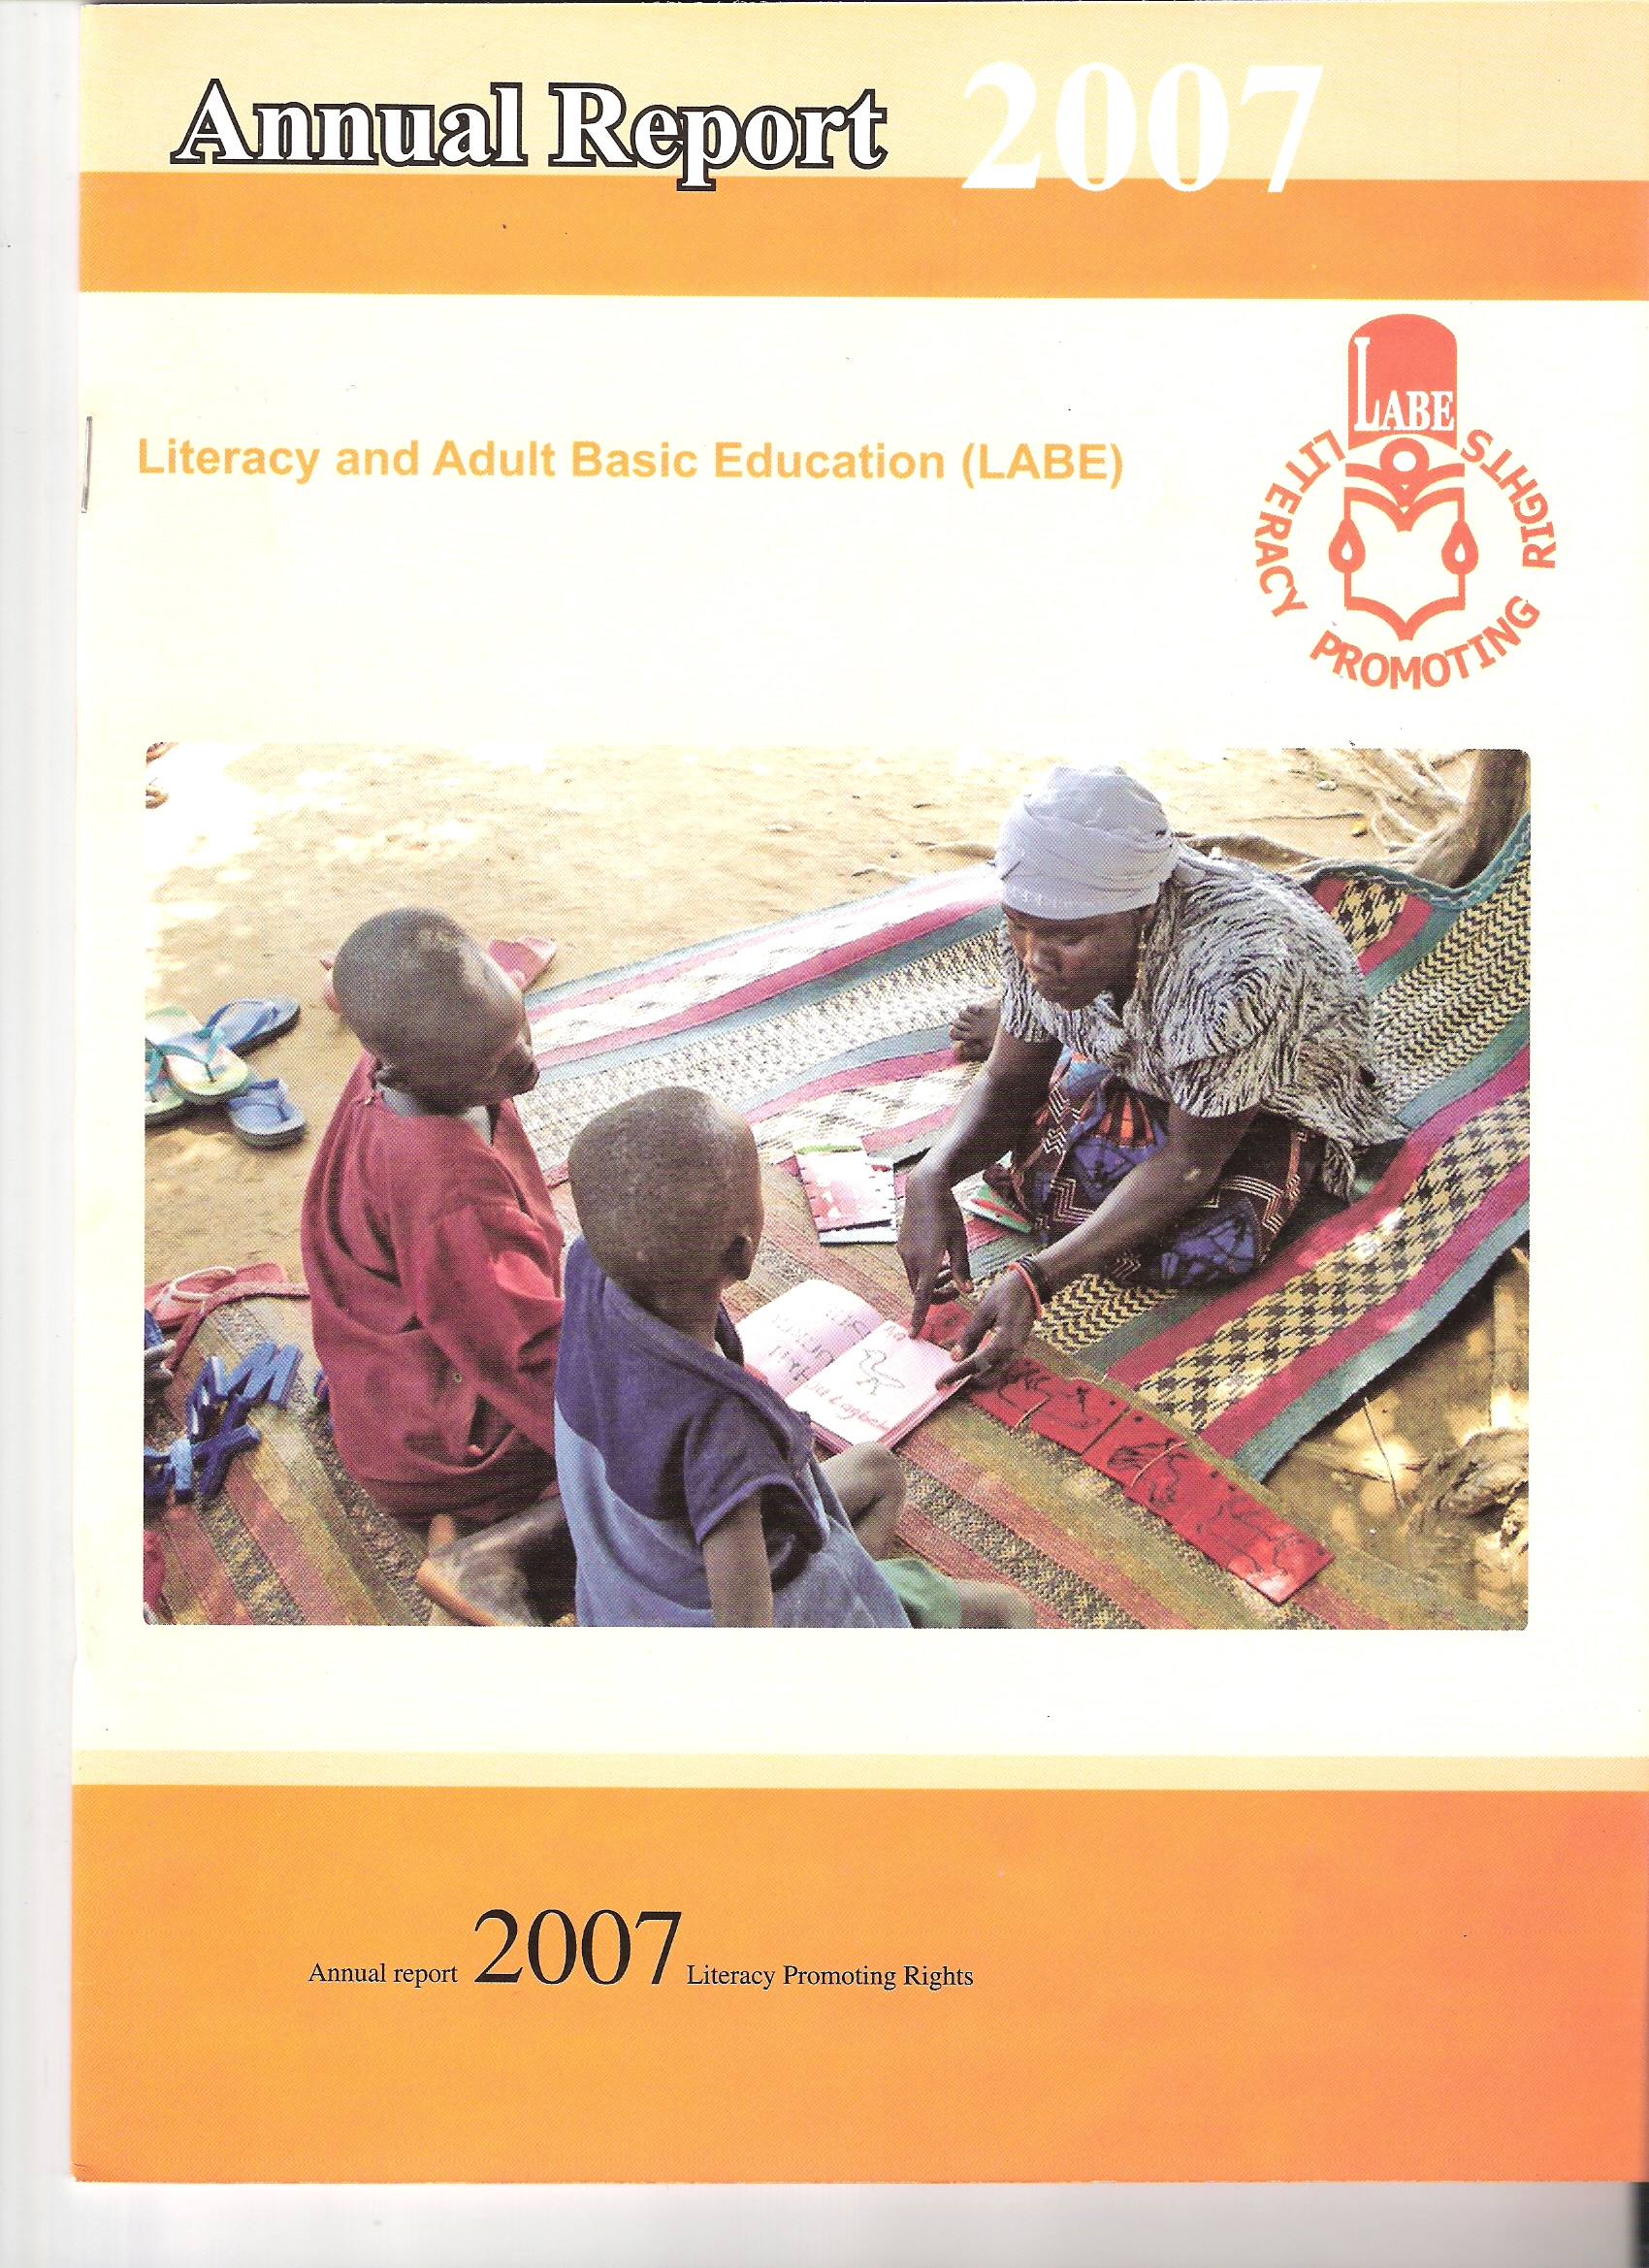 literacy and adult basic education resources annual report front page 2007